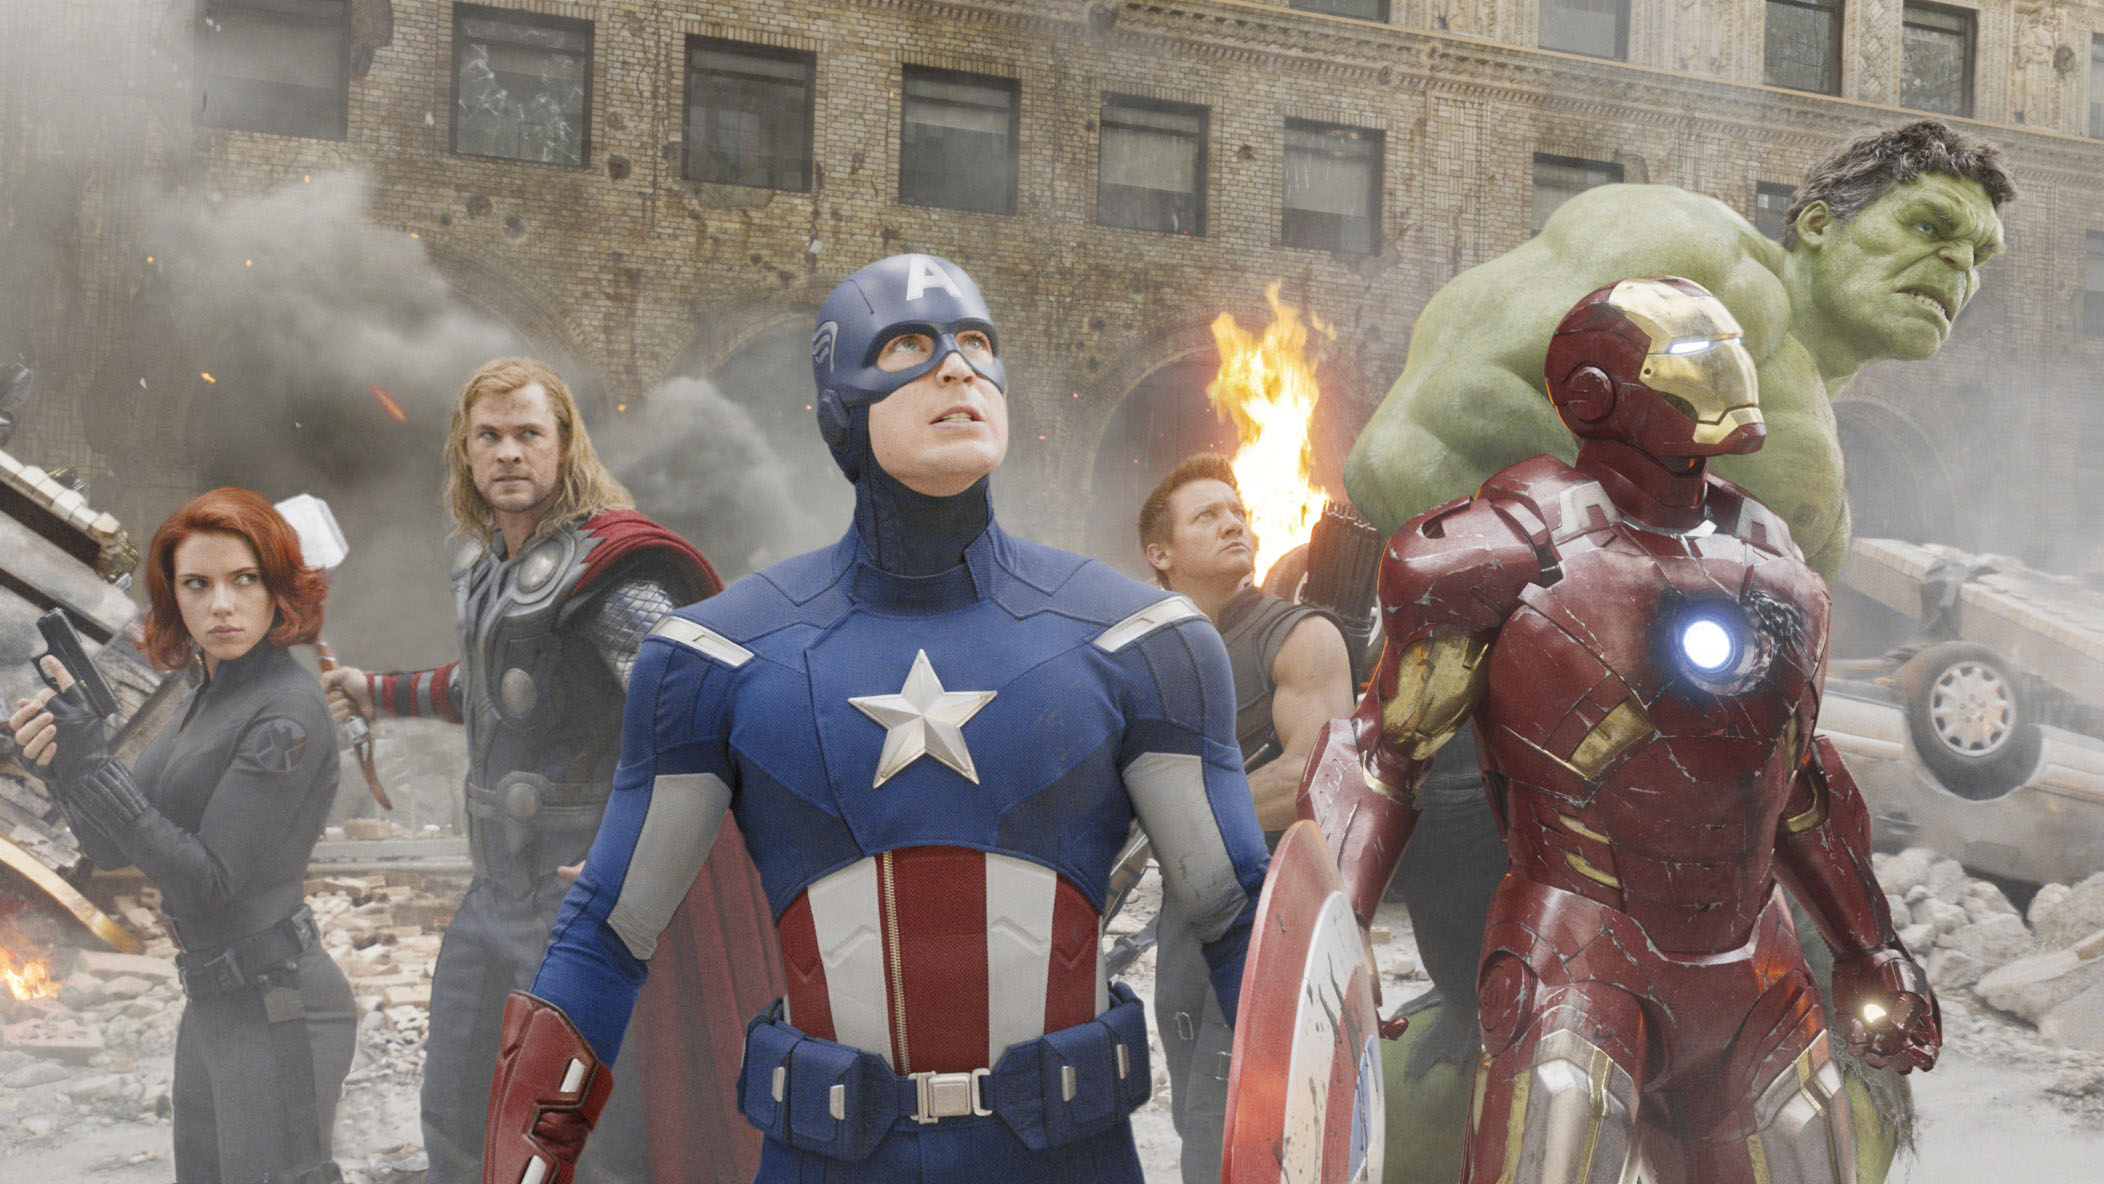 Superheroes earn nine zeroes: Marvel's calculated buildup to 'The Avengers,' with films featuring Iron Man, Thor, Captain America and the Hulk, has resulted in this film alone pocketing $1.5 billion — and rising. | © 2011 MVLFFLLC. TM & © 2011 MARVEL. ALL RIGHTS RESERVED